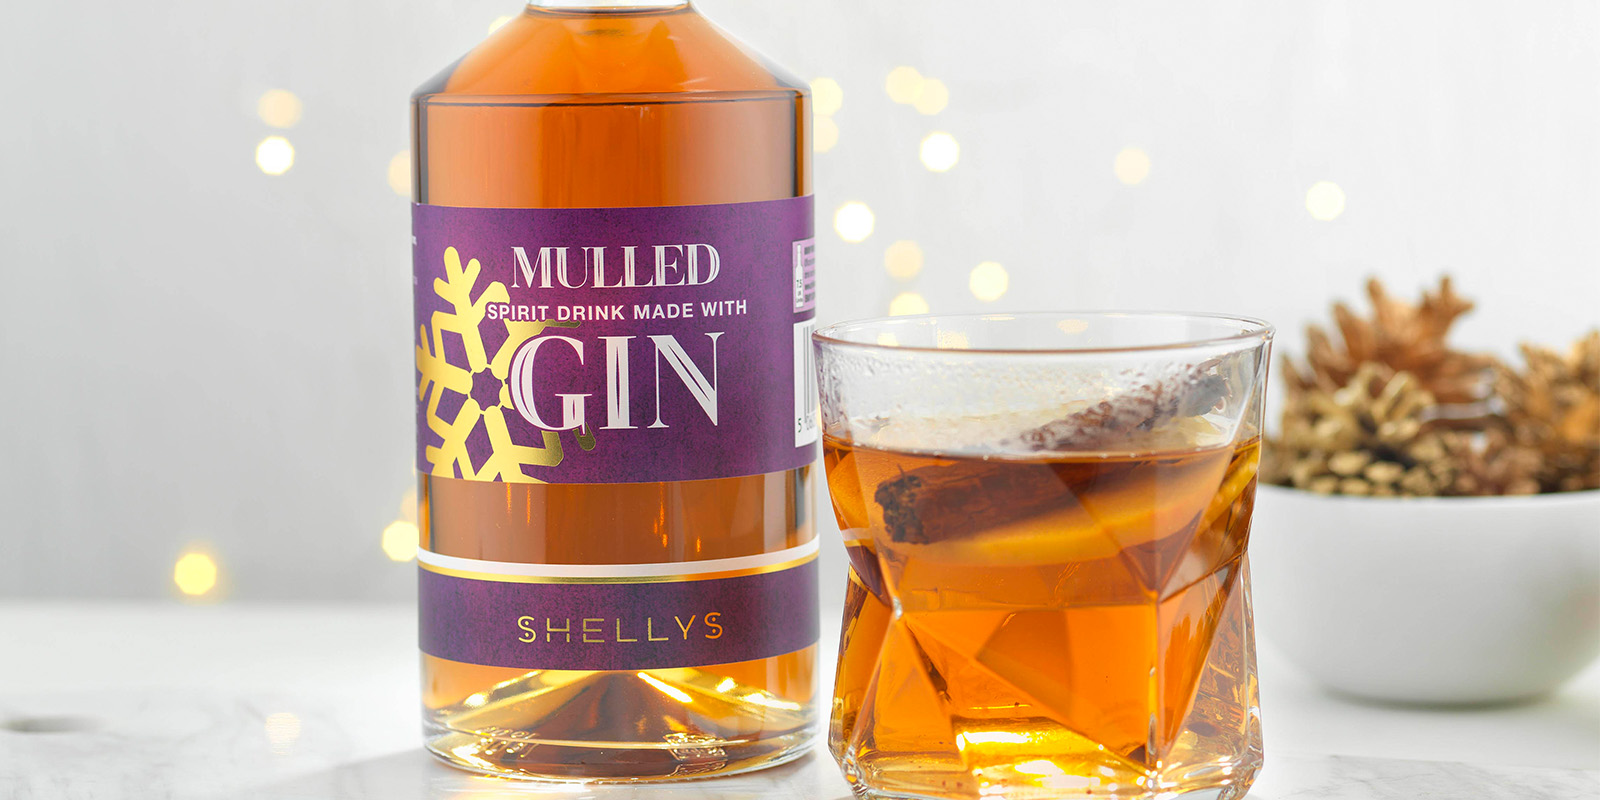 Shellys Drinks Mulled Gin background